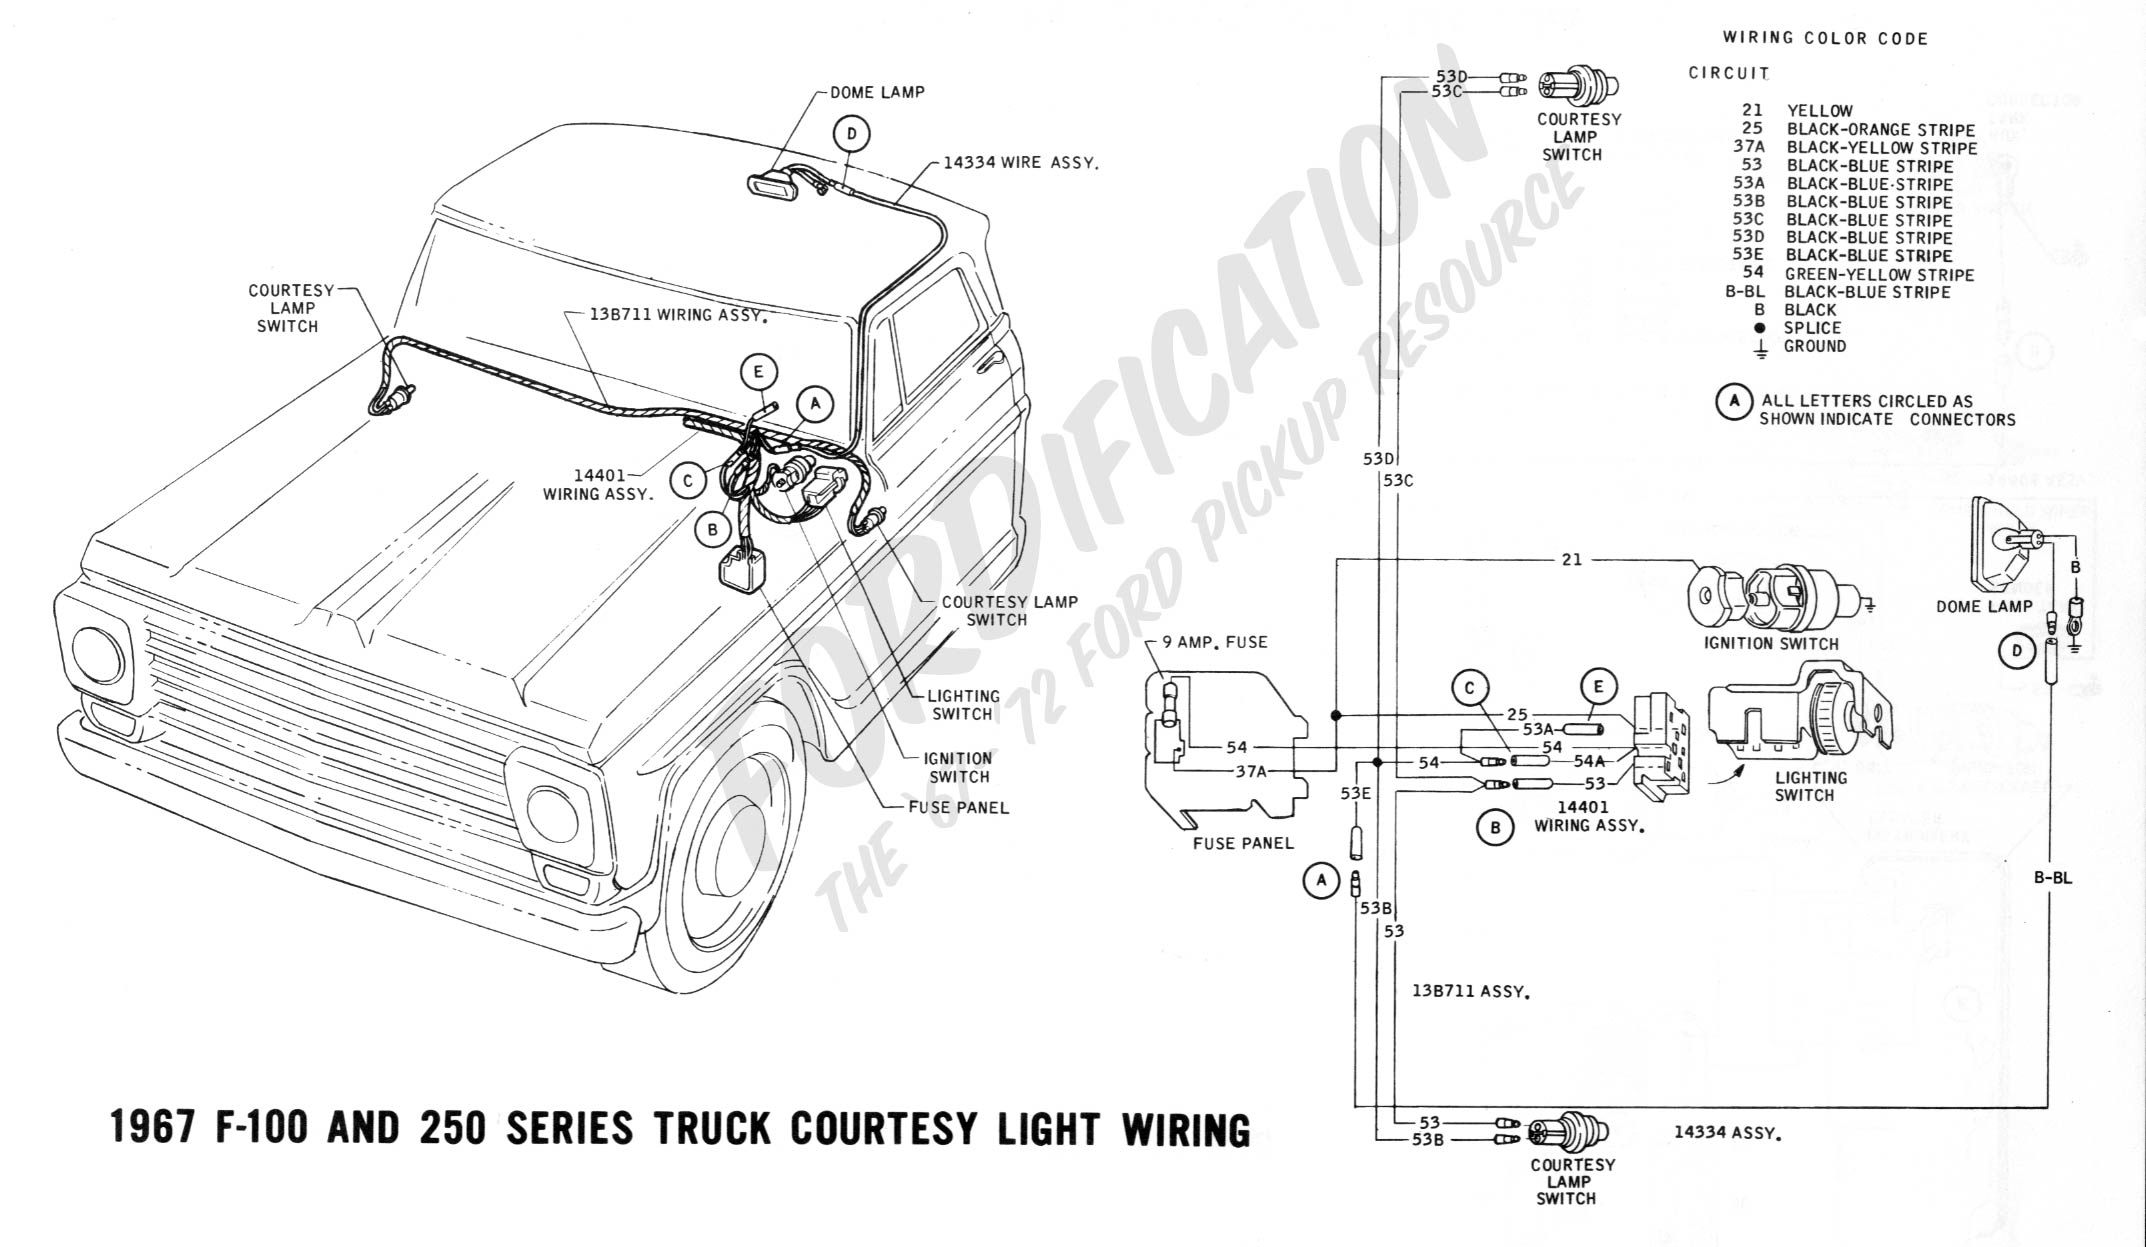 wiring 1967courtesylight ford truck technical drawings and schematics section h wiring Universal Ignition Switch Wiring Diagram at gsmx.co